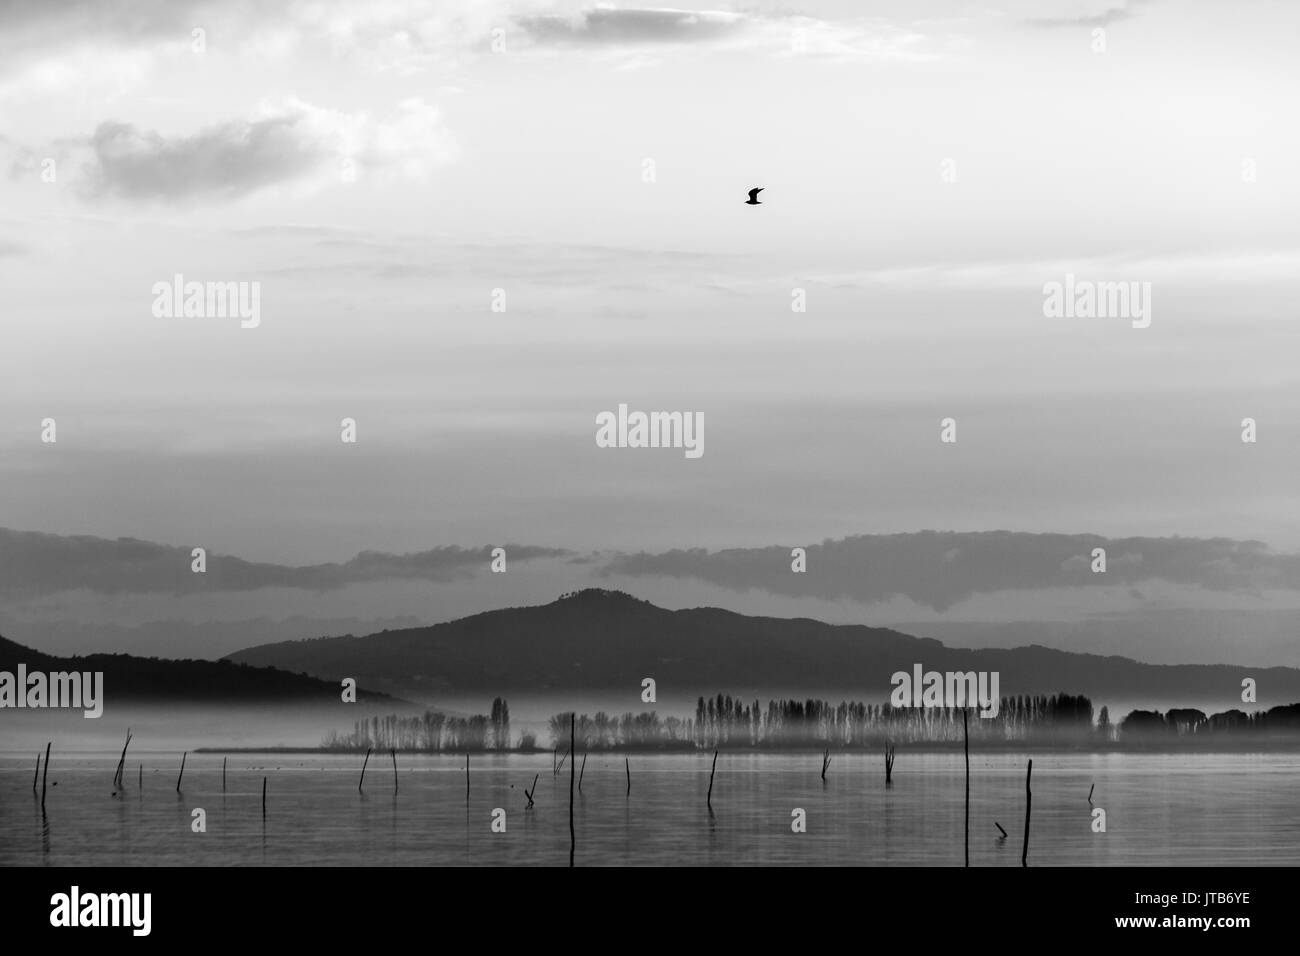 A seagull flying over a lake at dusk, with mist and beautiful, soft tones - Stock Image